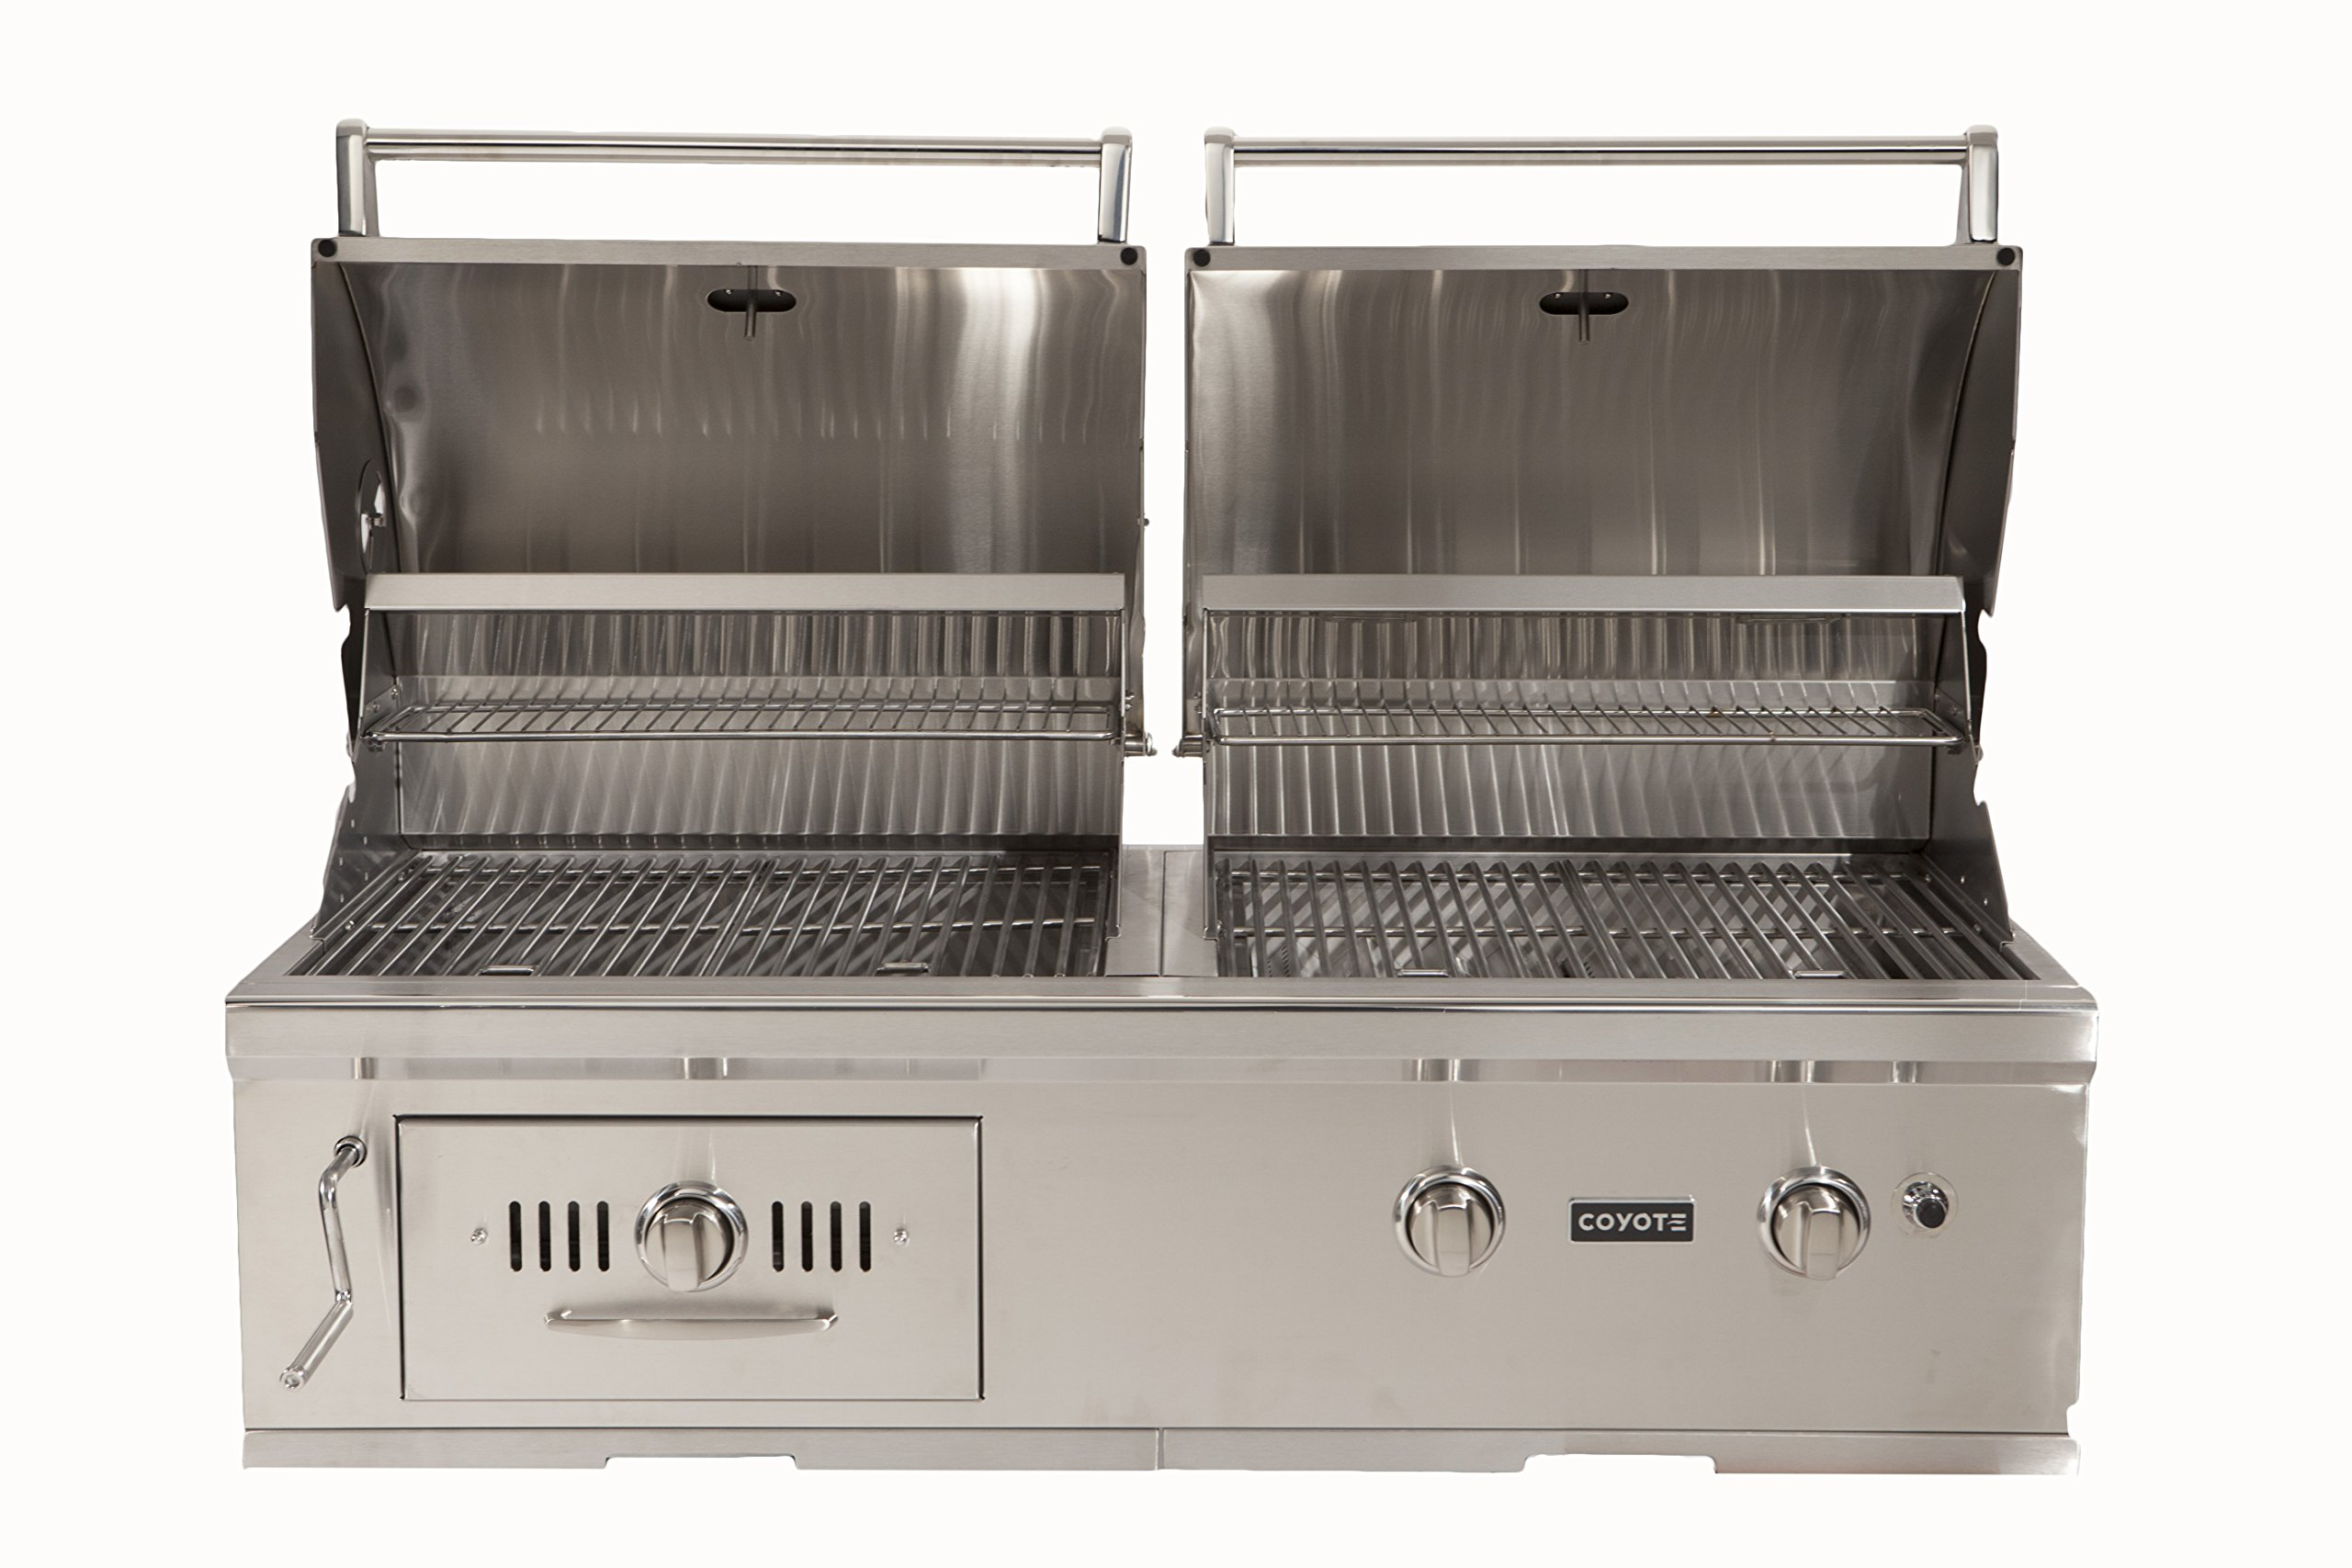 Coyote CH50NG Hybrid Grill, 50-Inch by Coyote